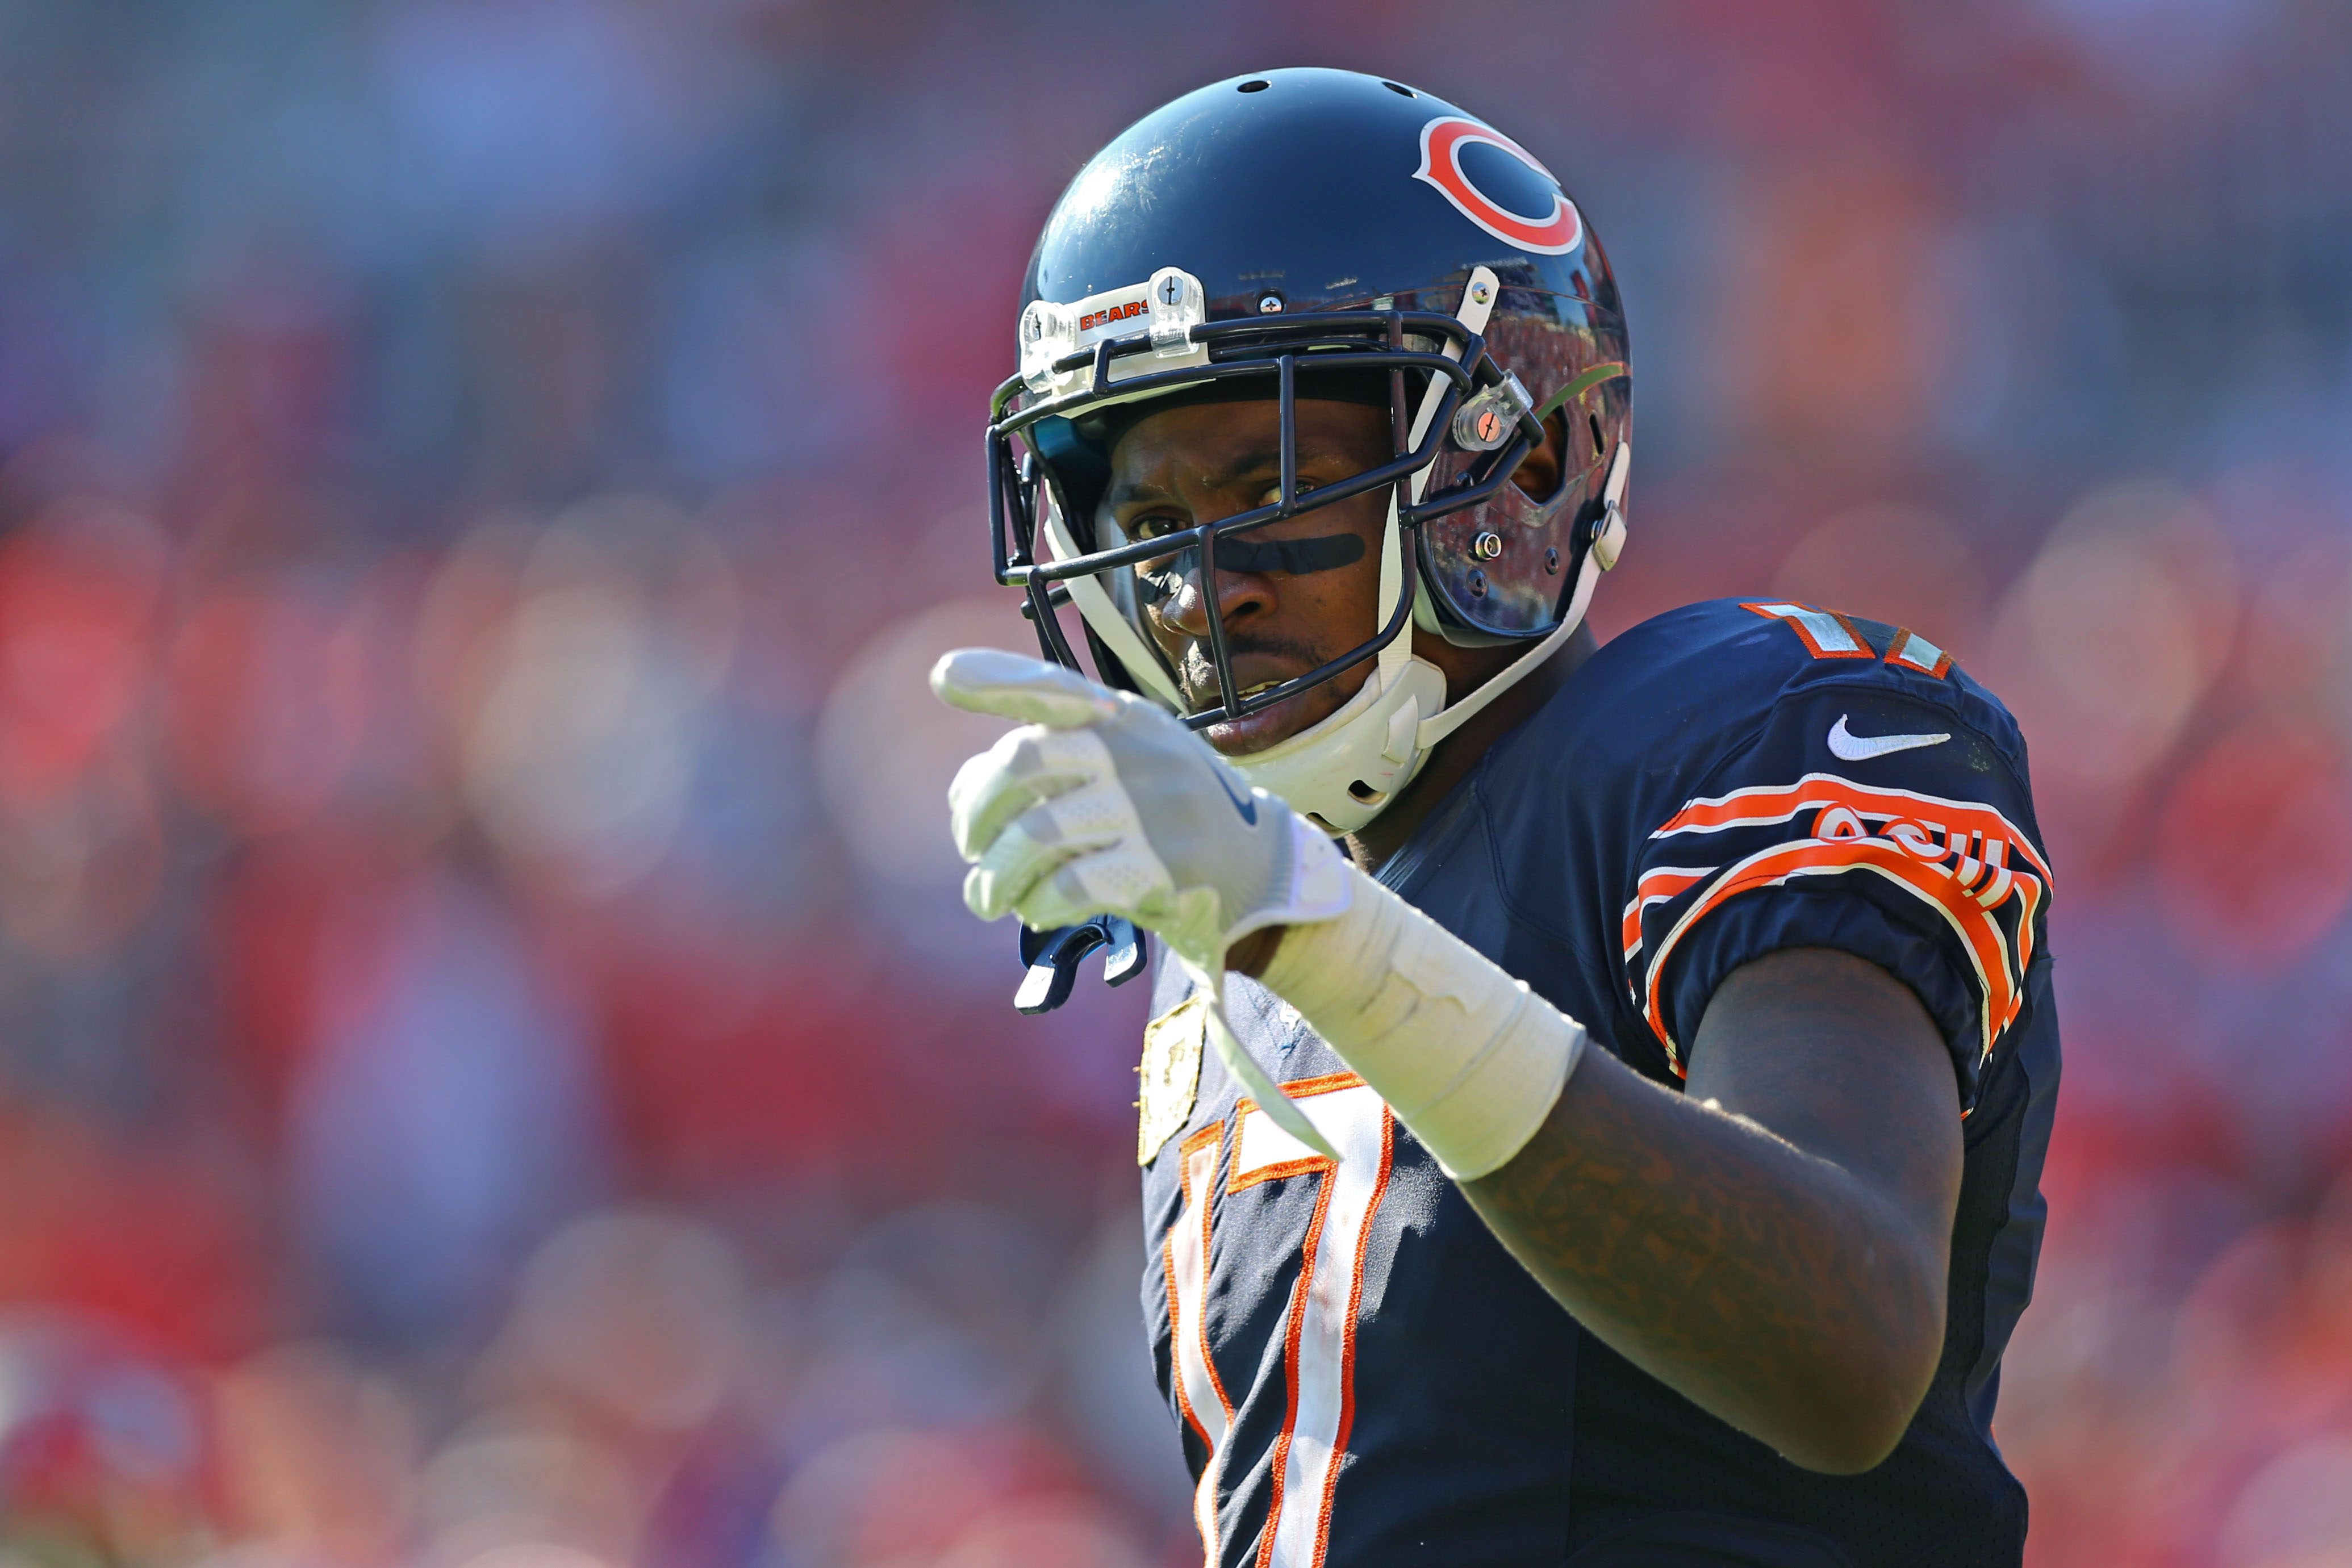 9683287-nfl-chicago-bears-at-tampa-bay-buccaneers-1